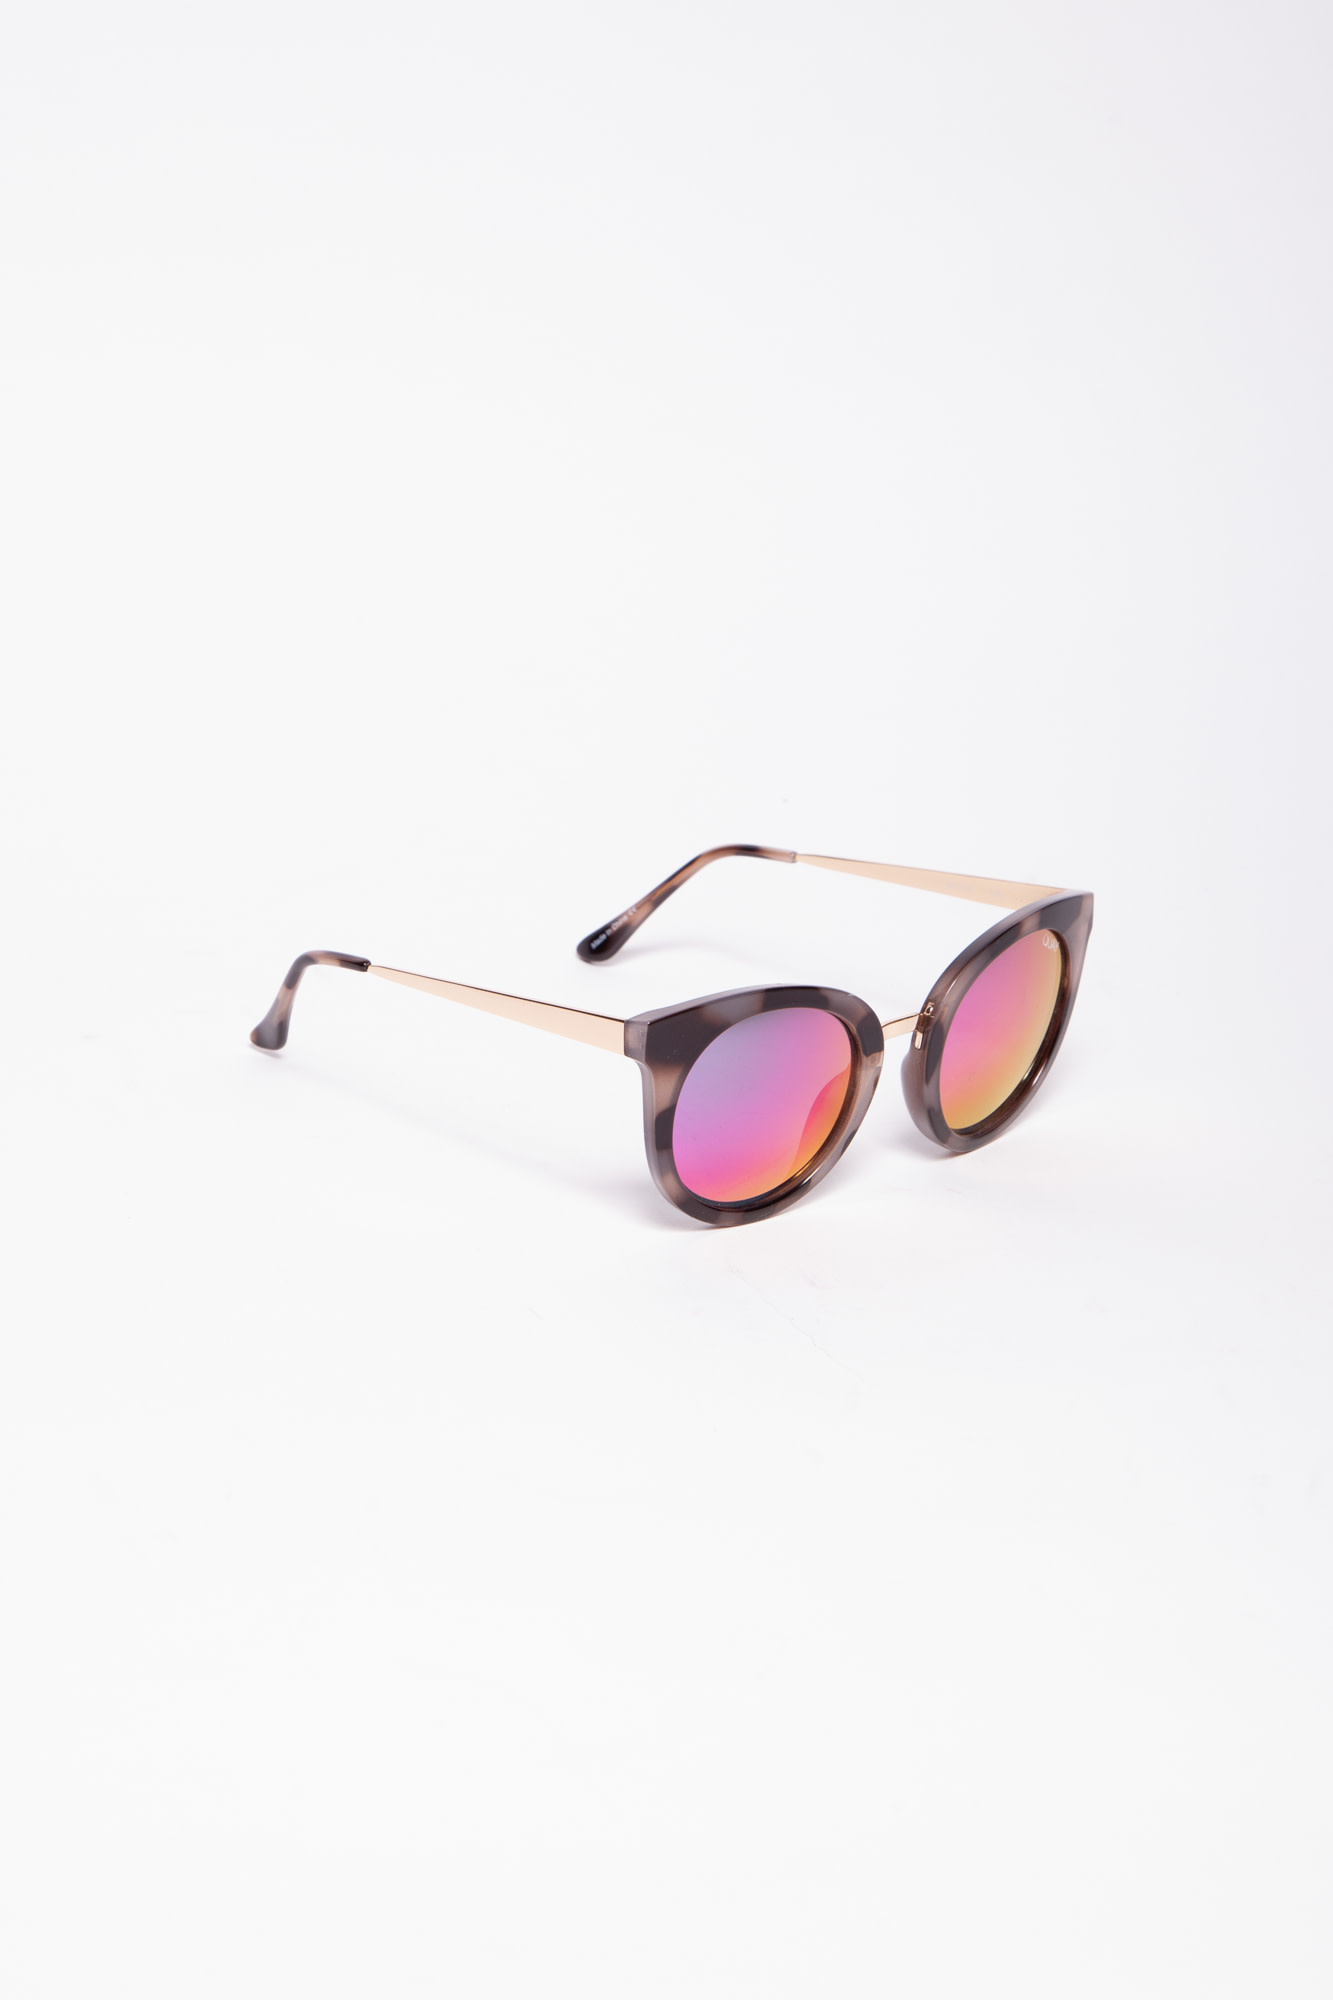 Quay Australia MIRRORED GLASSES WITH COLORED REFLECTIONS - NEW